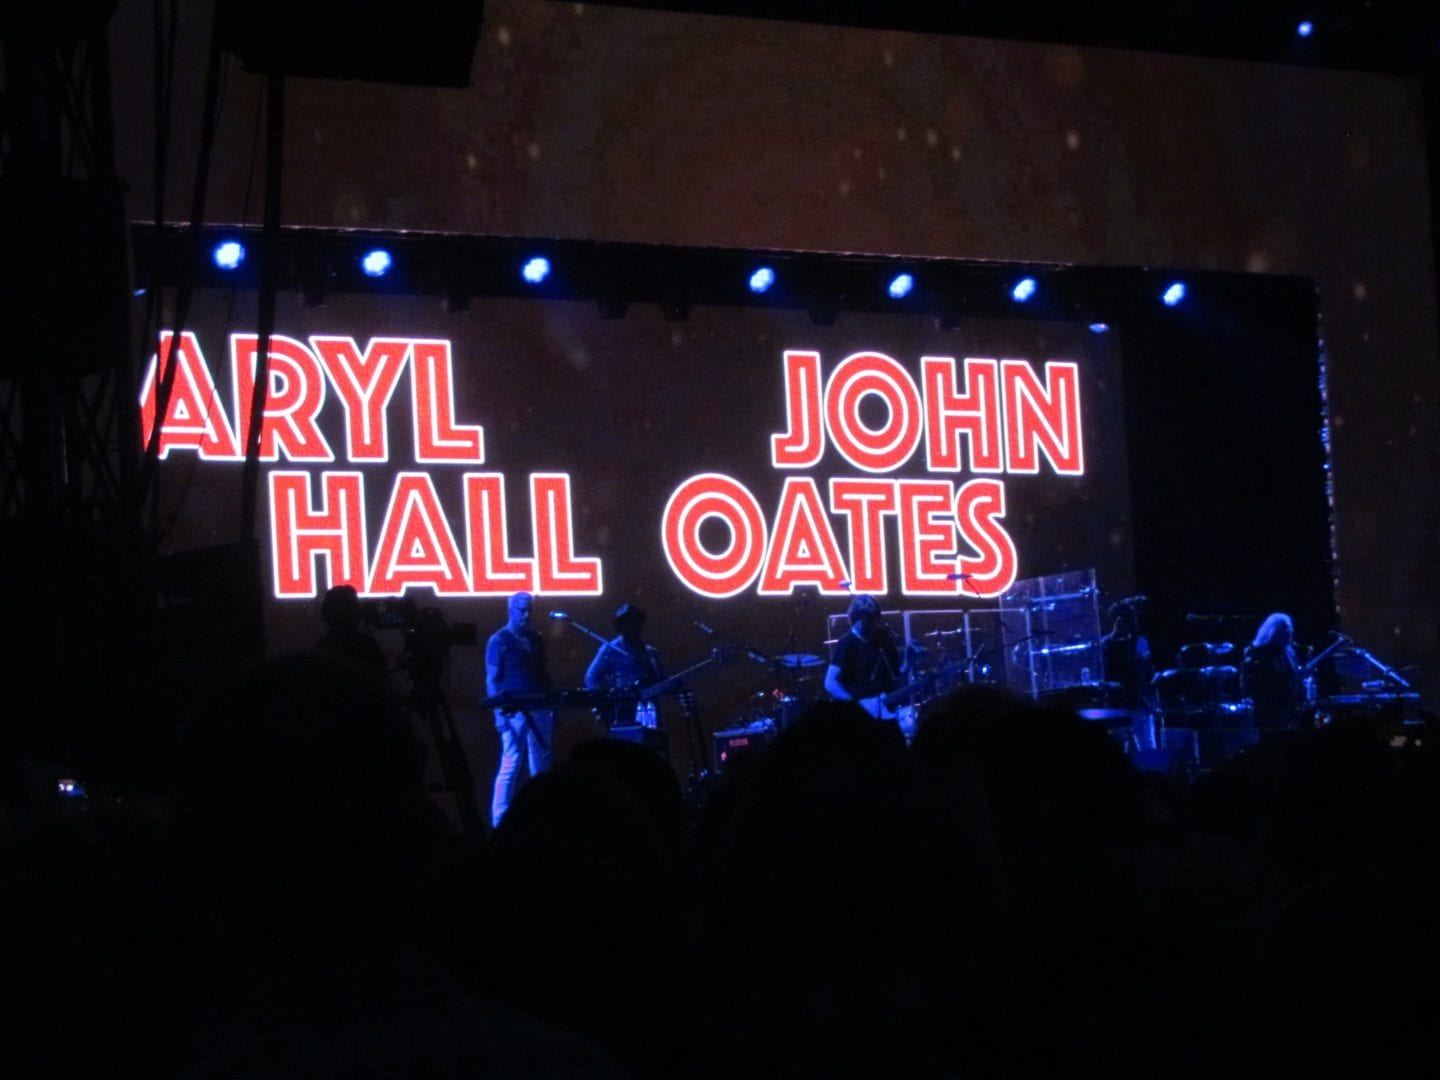 A concert by Daryl Hall and John Oates